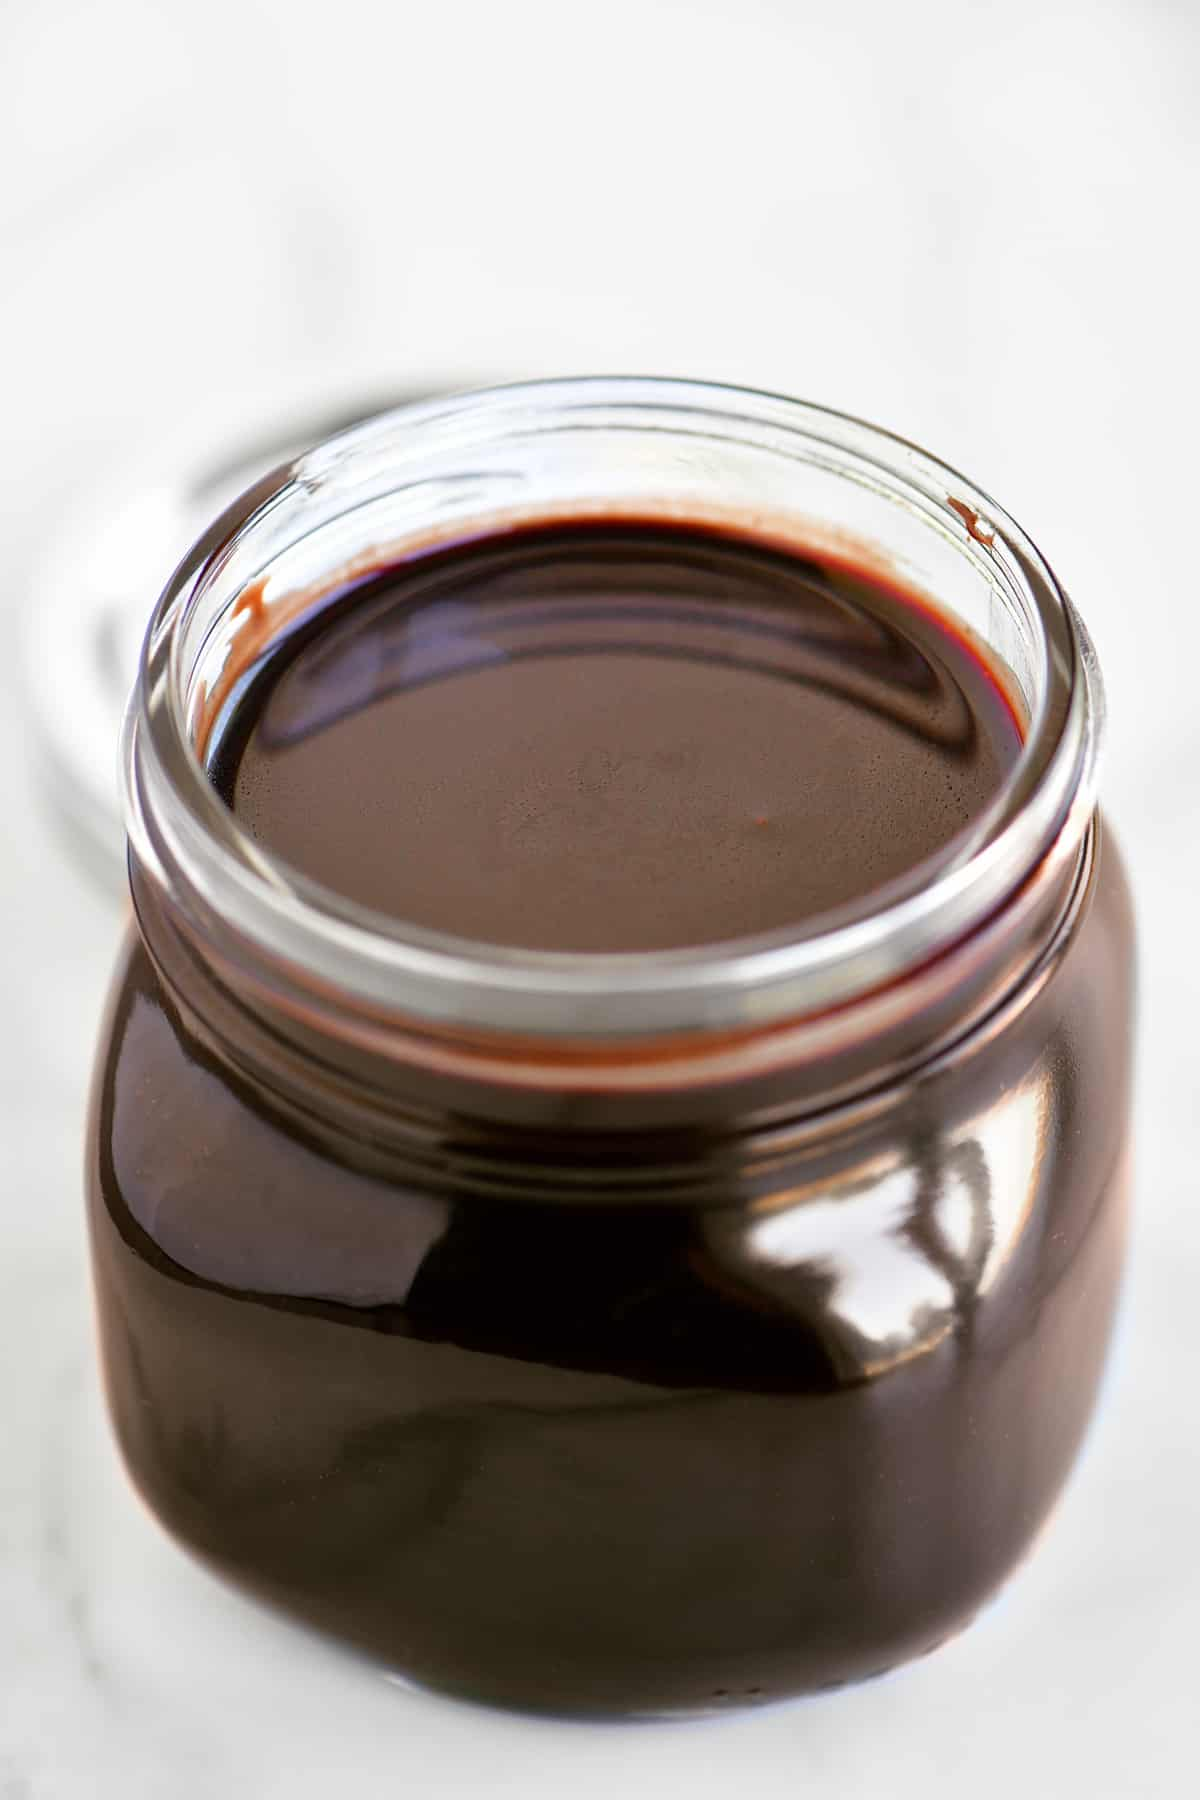 a jar of rich yummy chocolate sauce